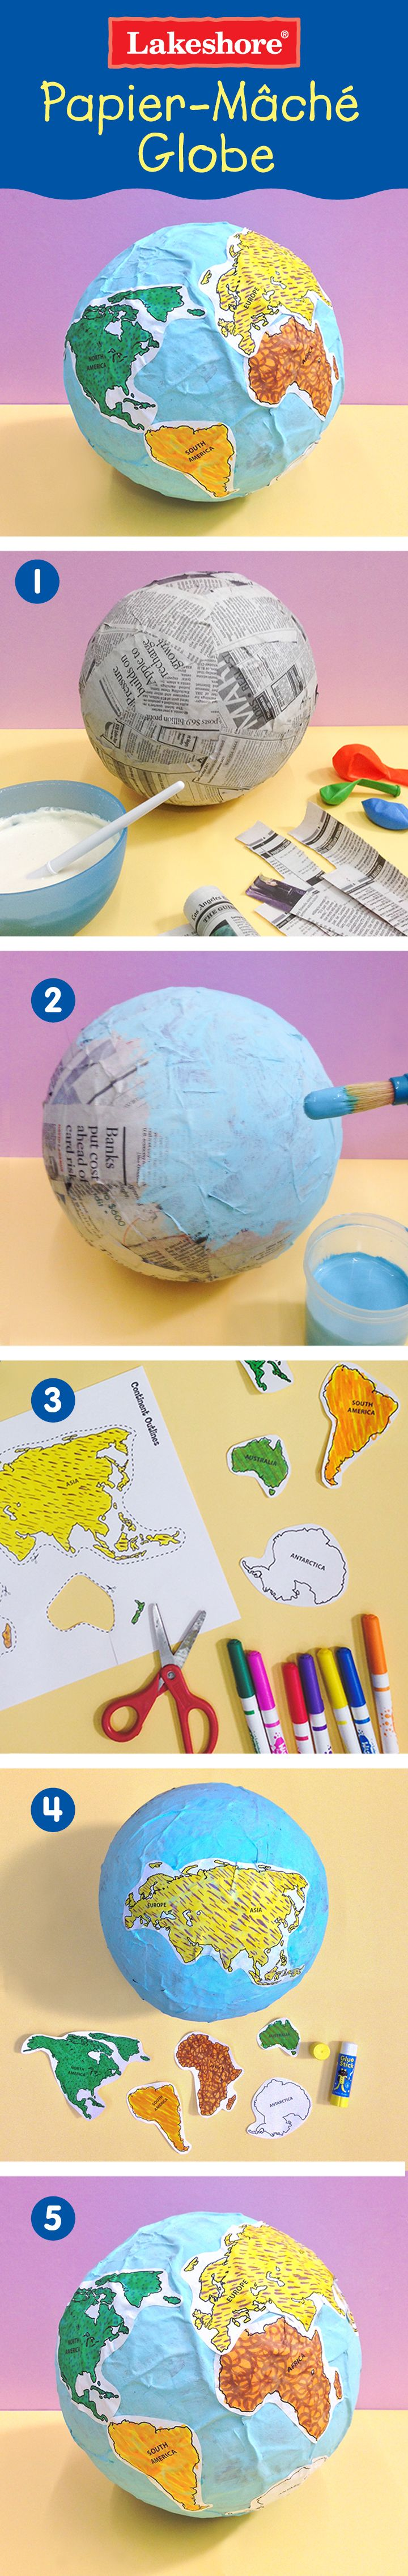 Paper mache globe project ...How could is this?!